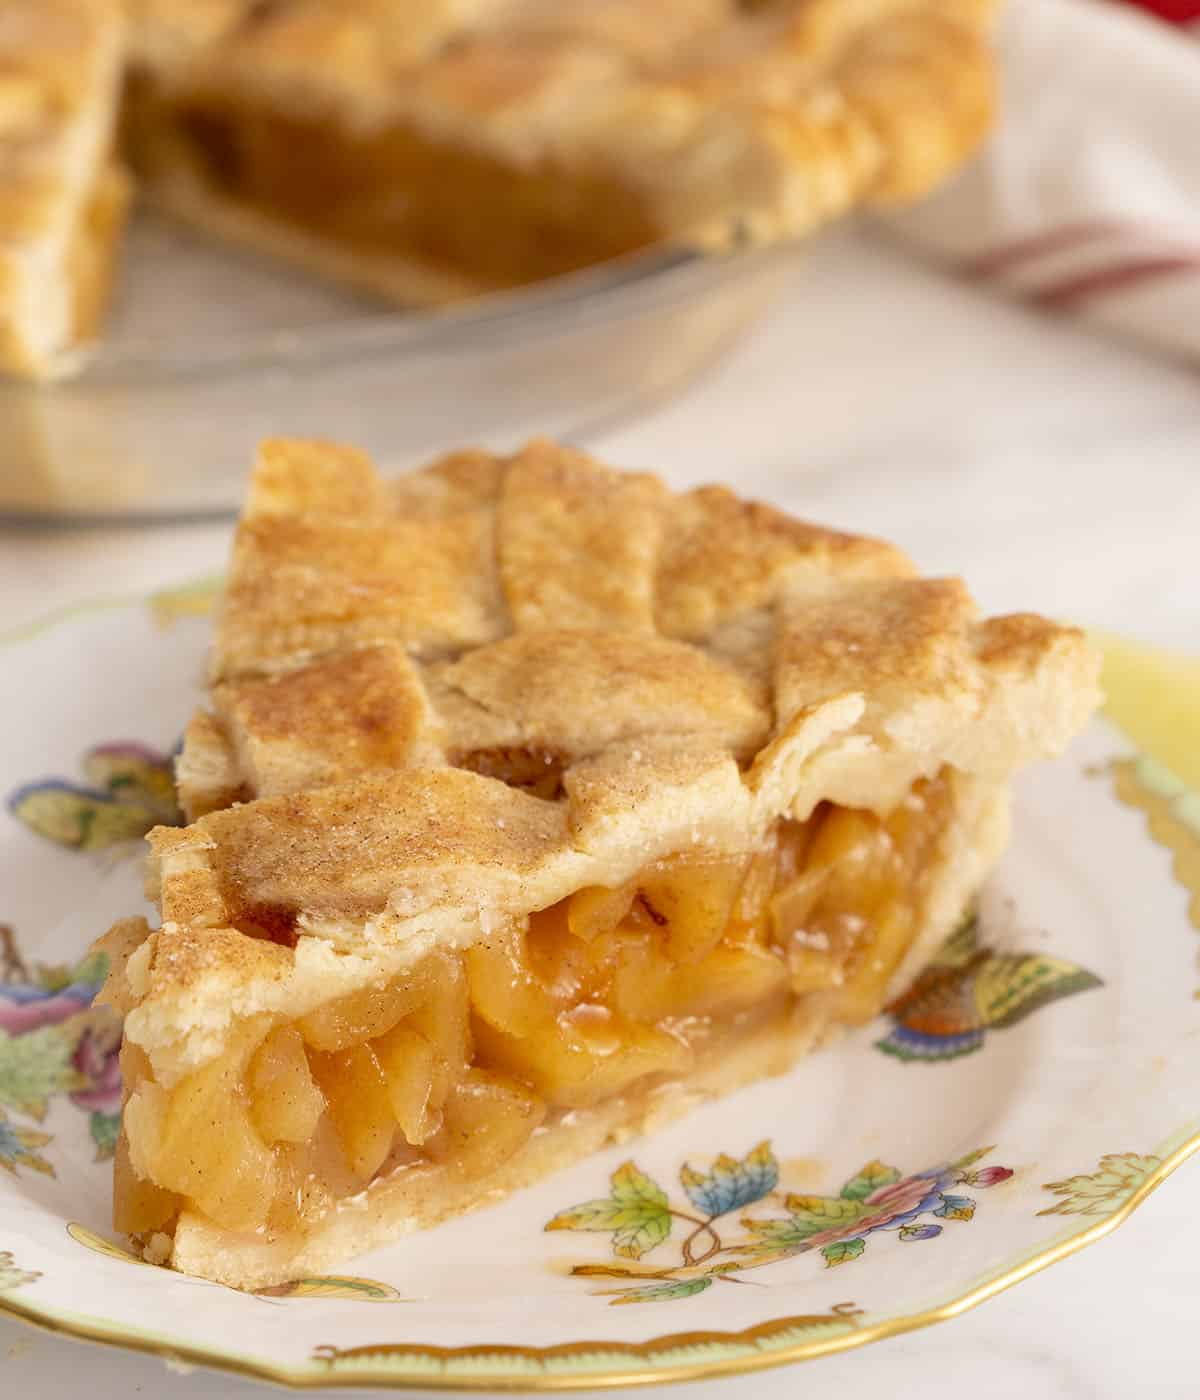 A piece of apple pie topped with a pastry lattice.